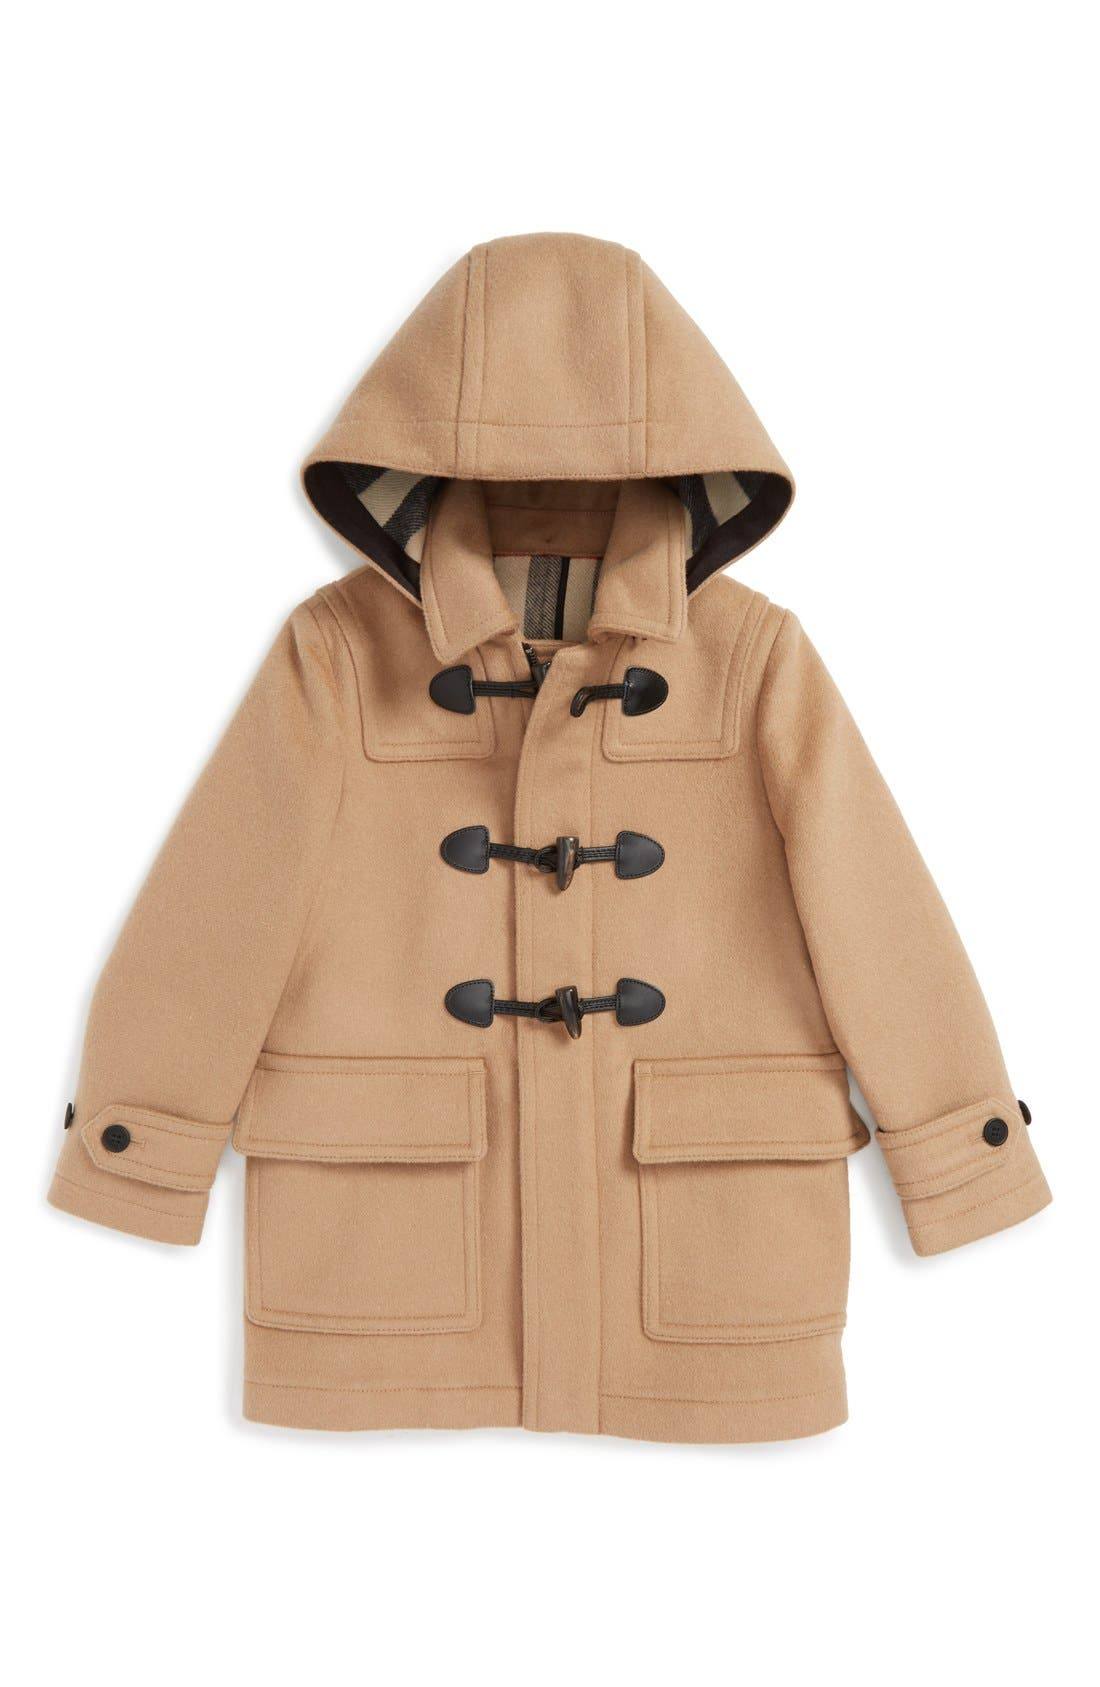 Burberry 'Burwood' Wool Toggle Coat (Little Boys & Big Boys)